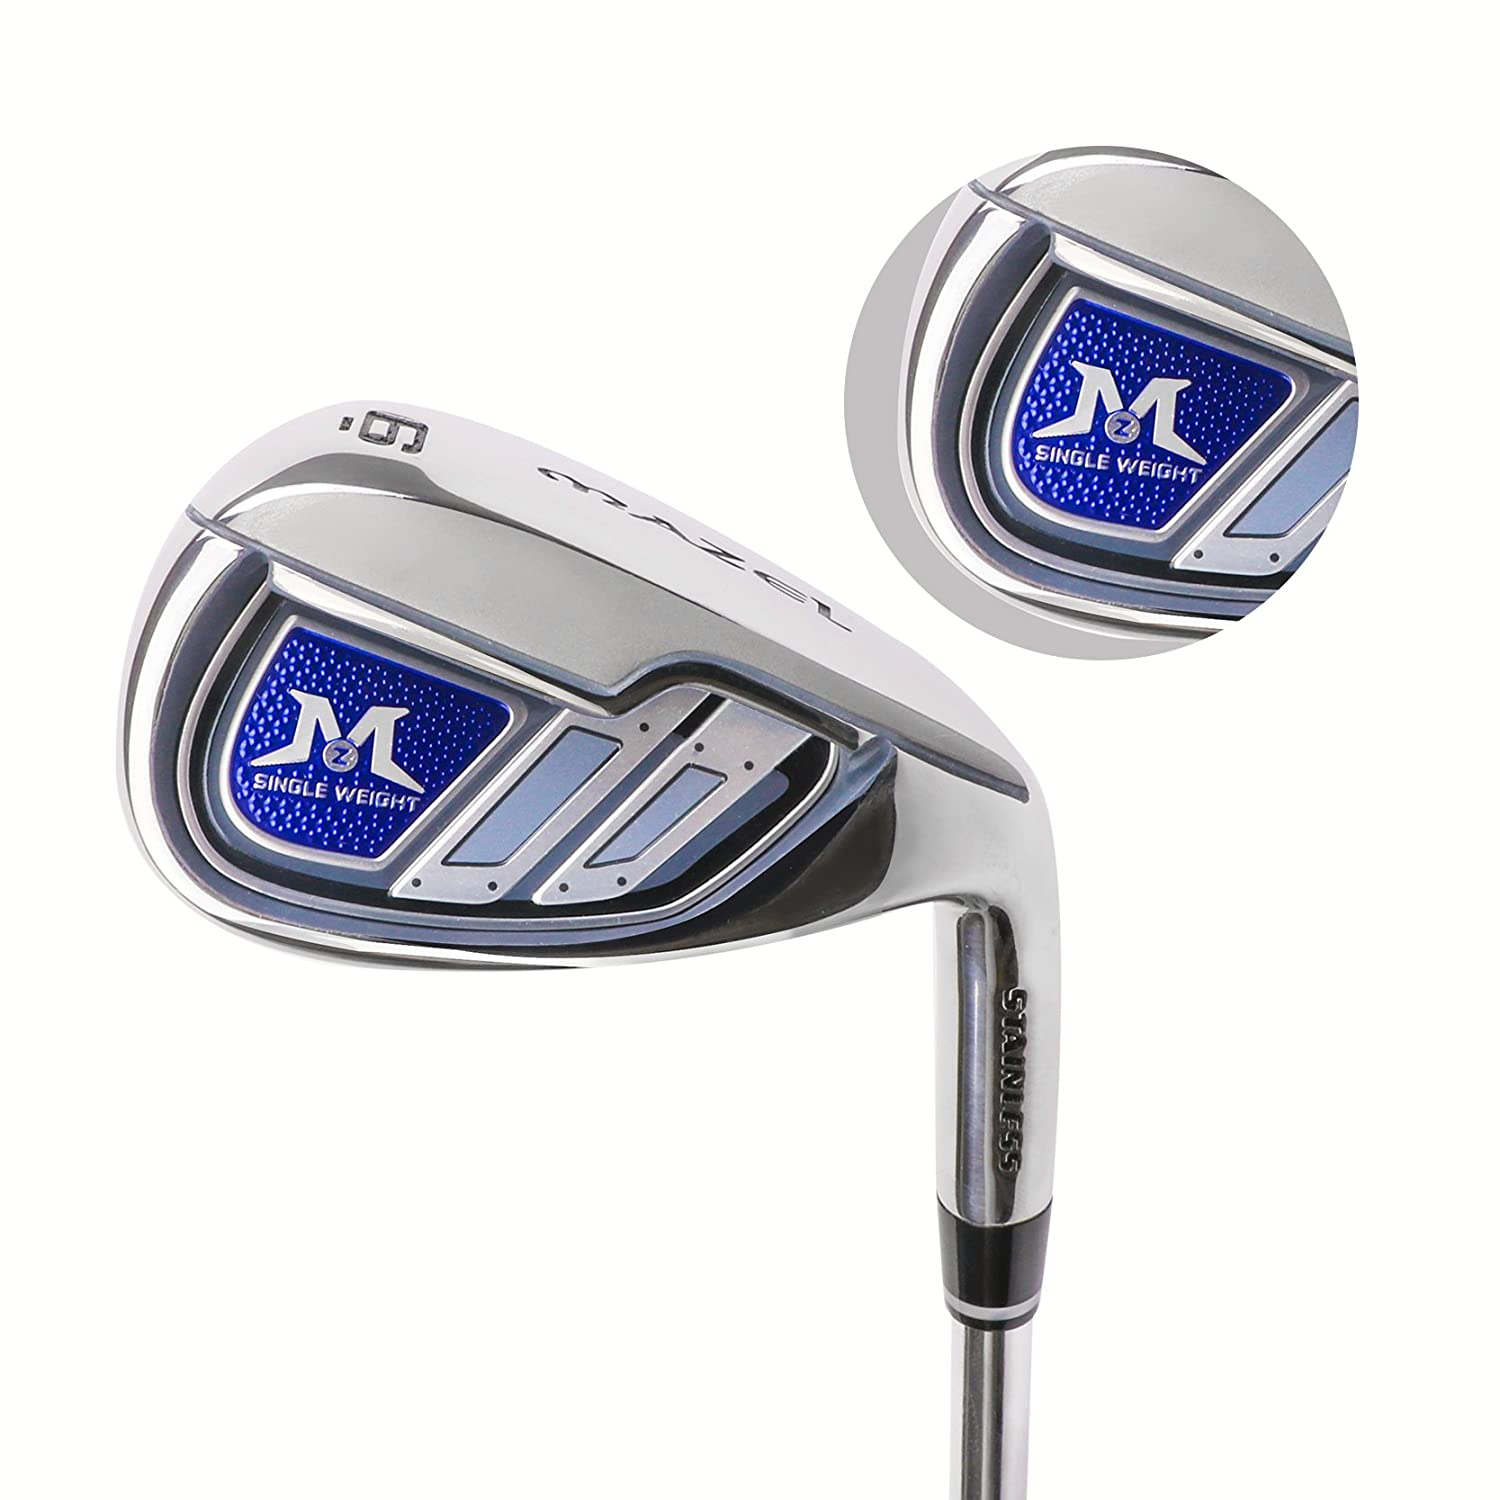 Mazel Golf Iron Set Golf Club Iron Para Hombres De Una Sola ...